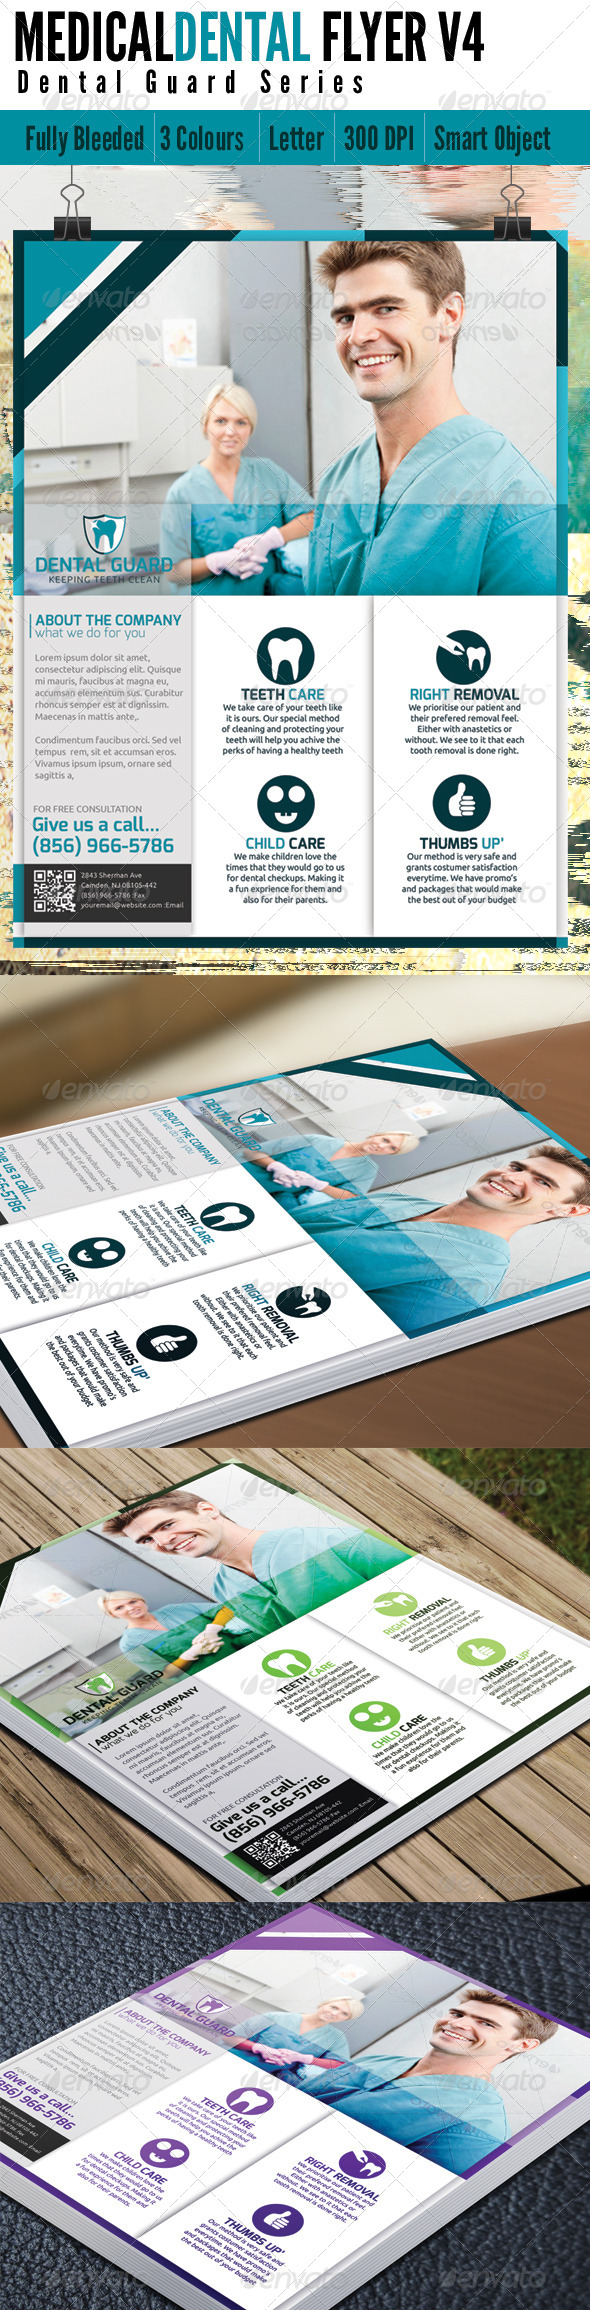 Medical Dental Flyer V4 - Flyers Print Templates